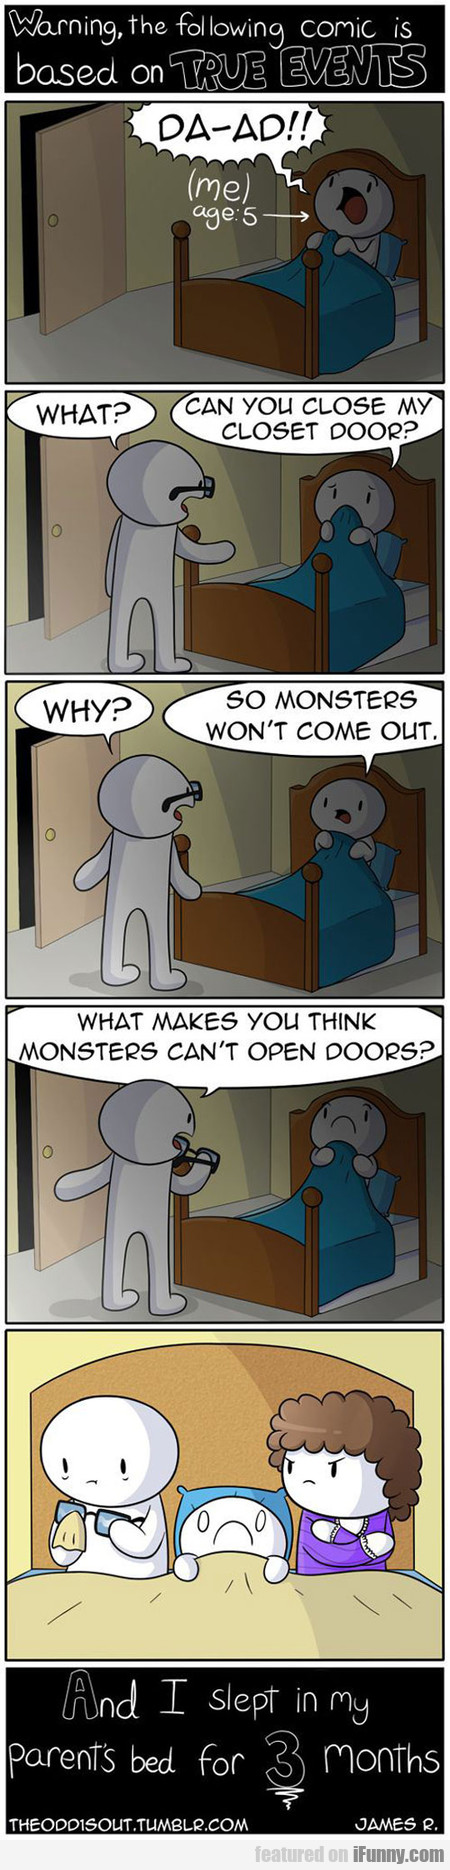 Can You Close My Closet Door?